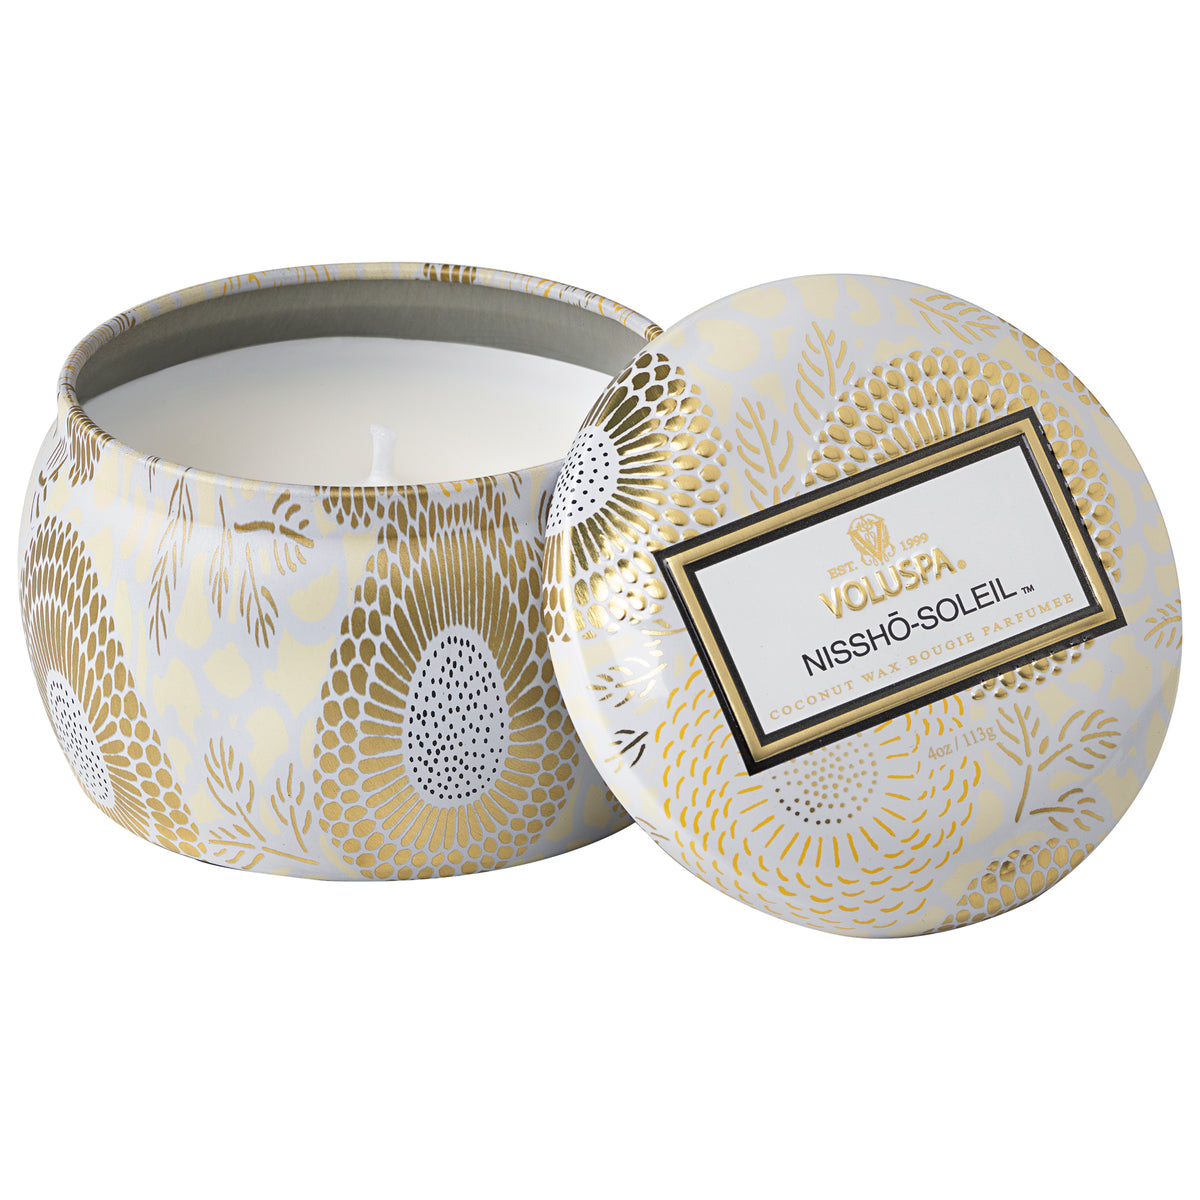 Nissho-Soleil - Petite Tin Candle - 1